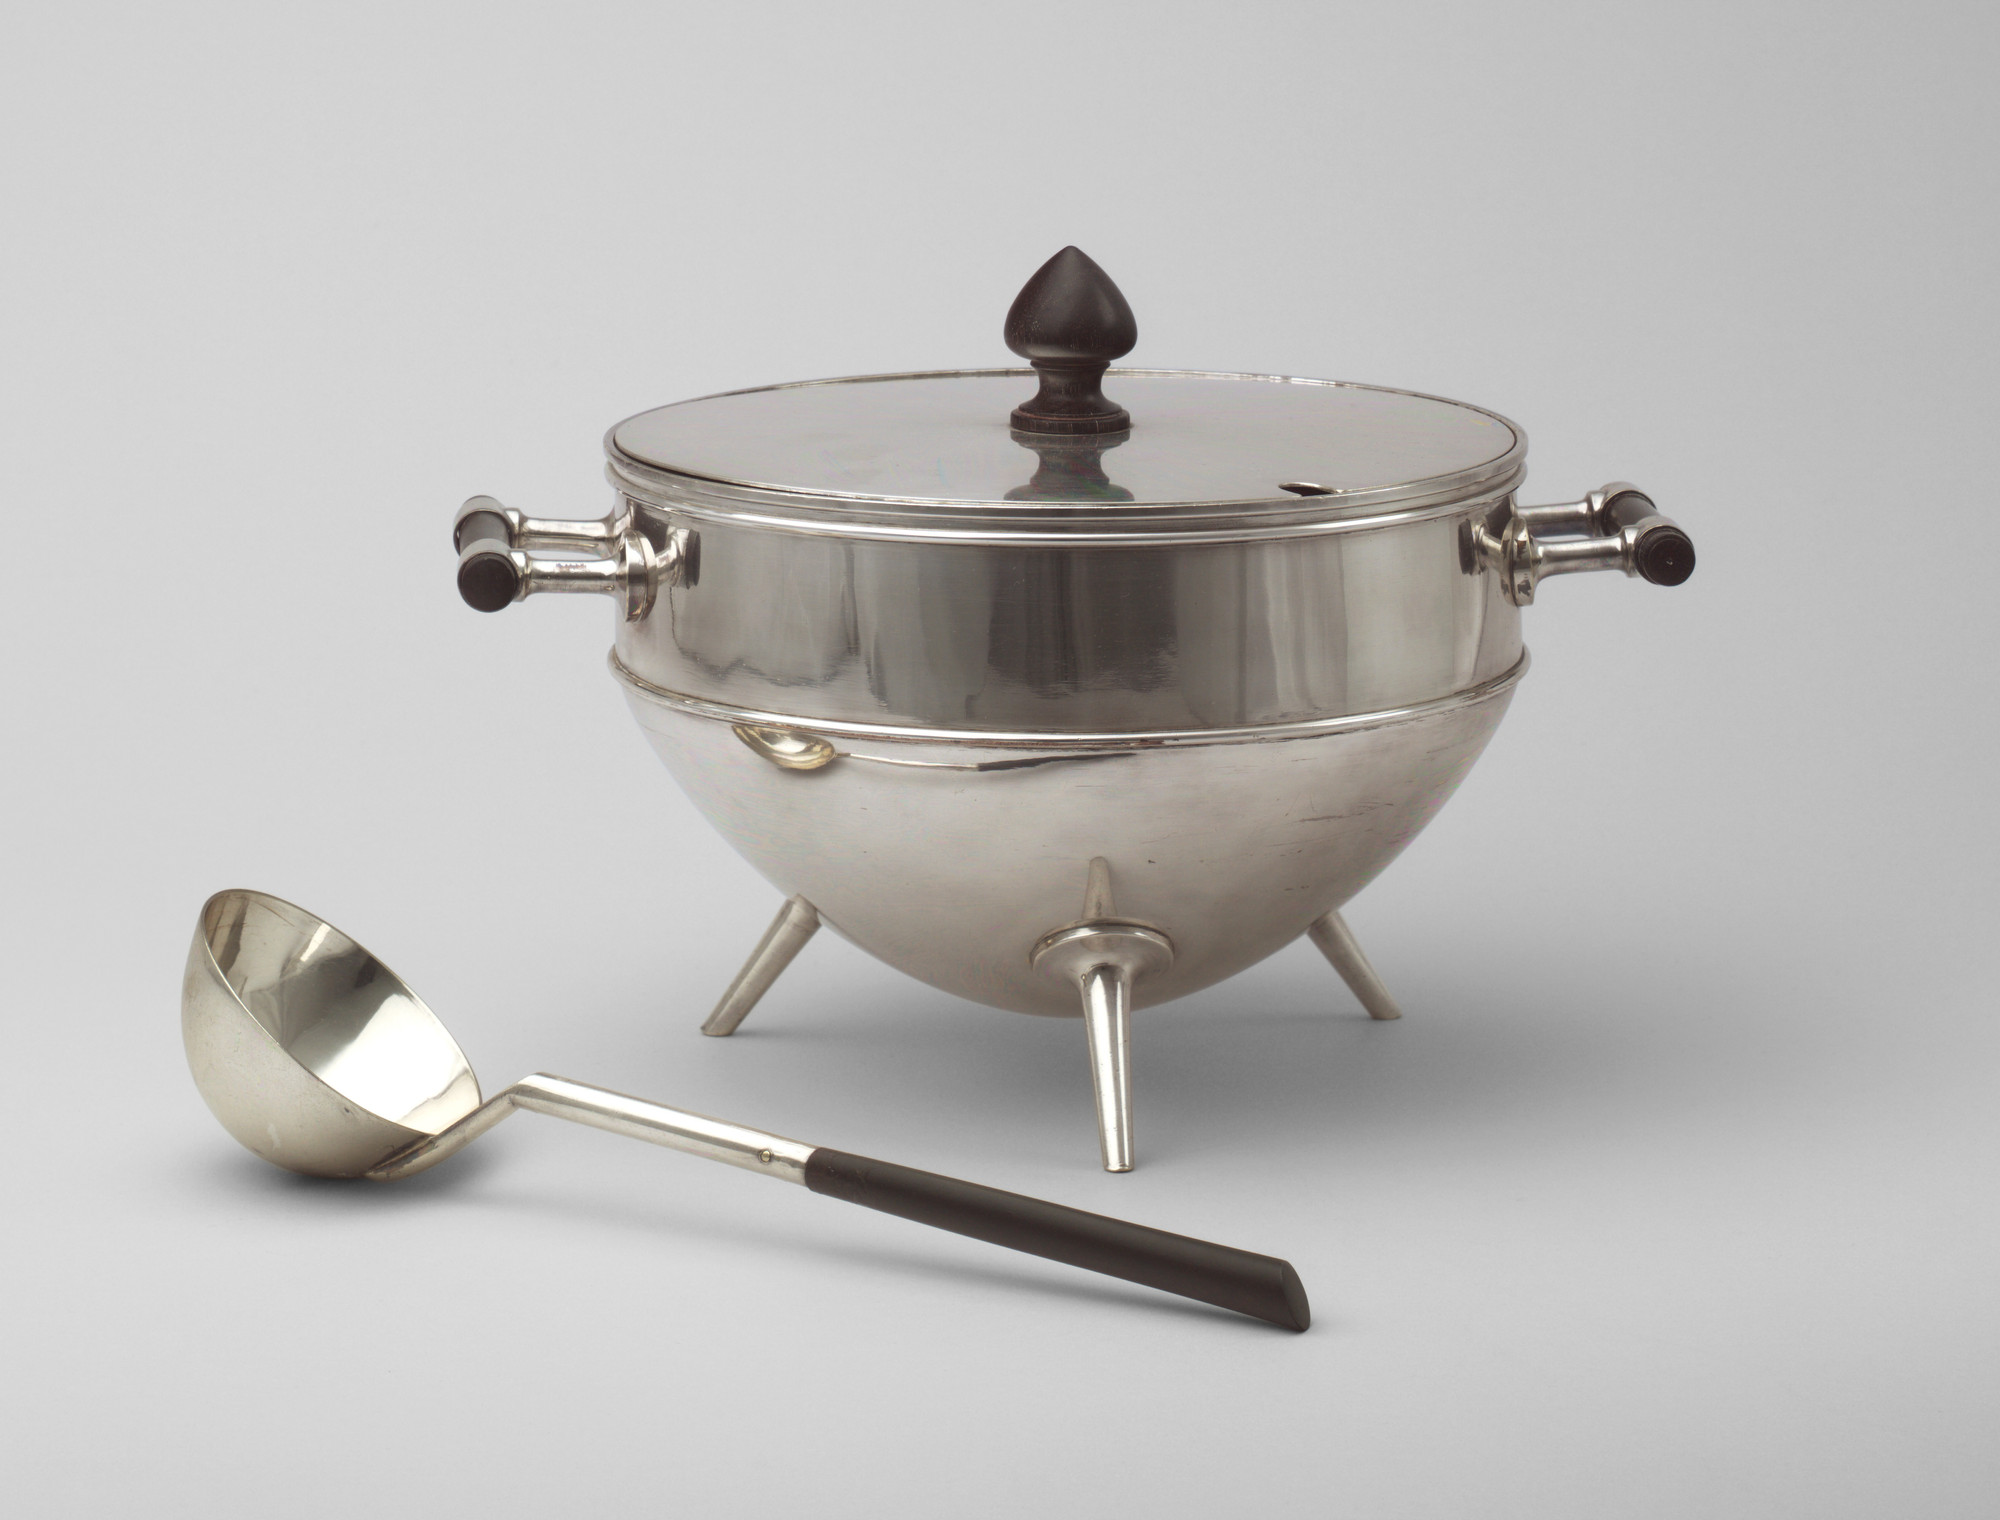 Christopher Dresser. Covered Soup Tureen and Ladle. 1880